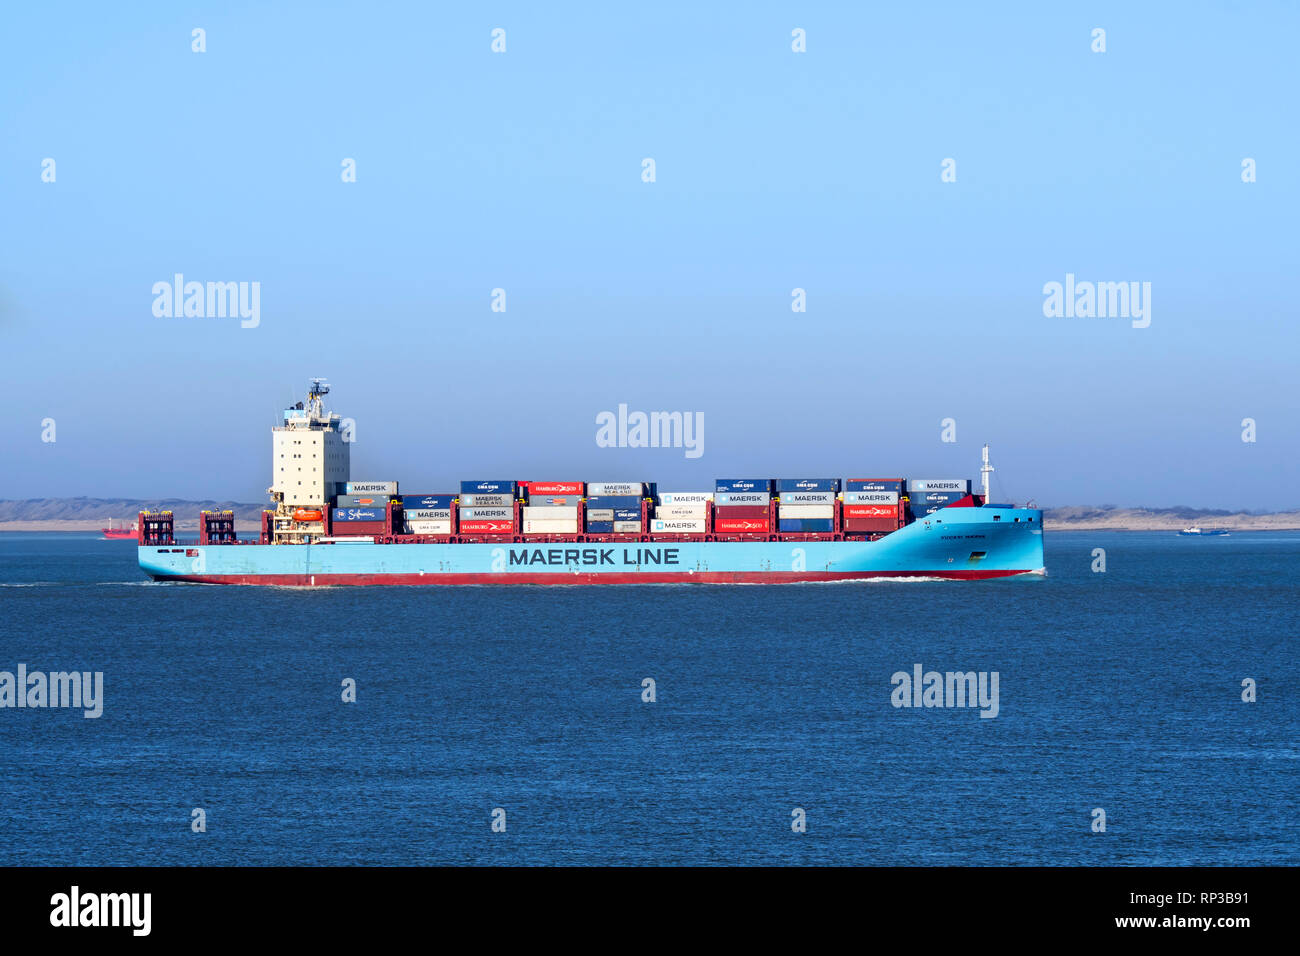 Vuoksi Maersk, ice-class feeder container ship / cargo ship from Maersk Line, Danish international container shipping company Stock Photo